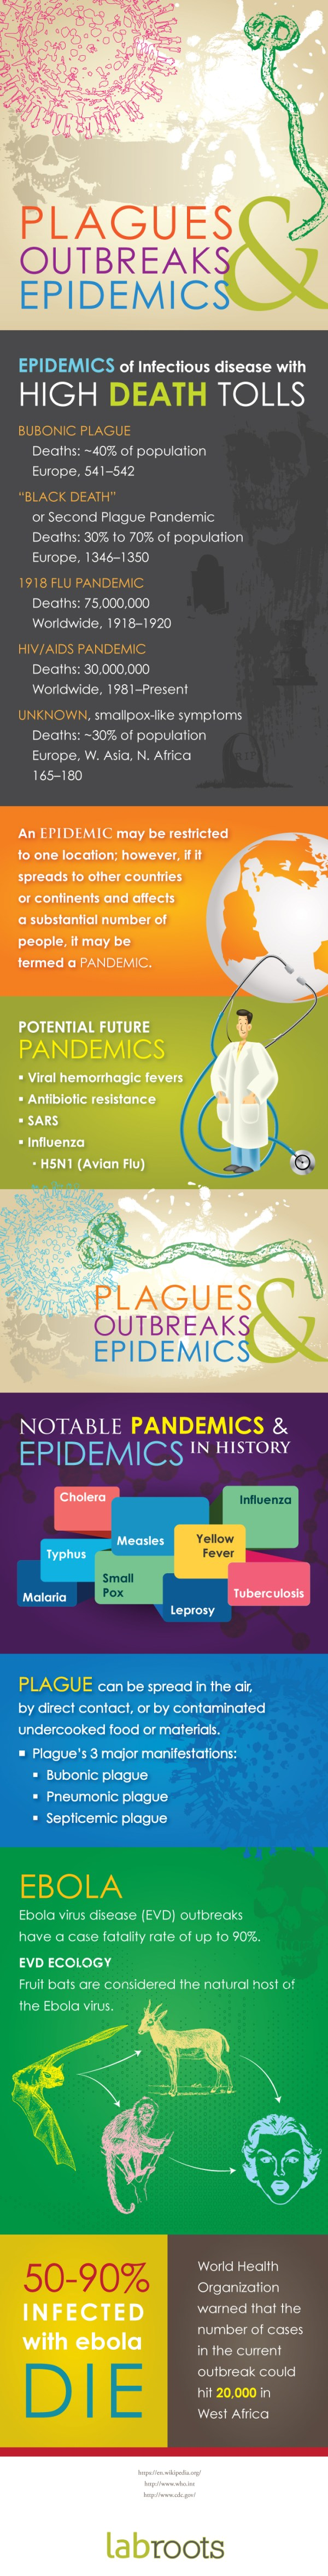 plagues-outbreaks